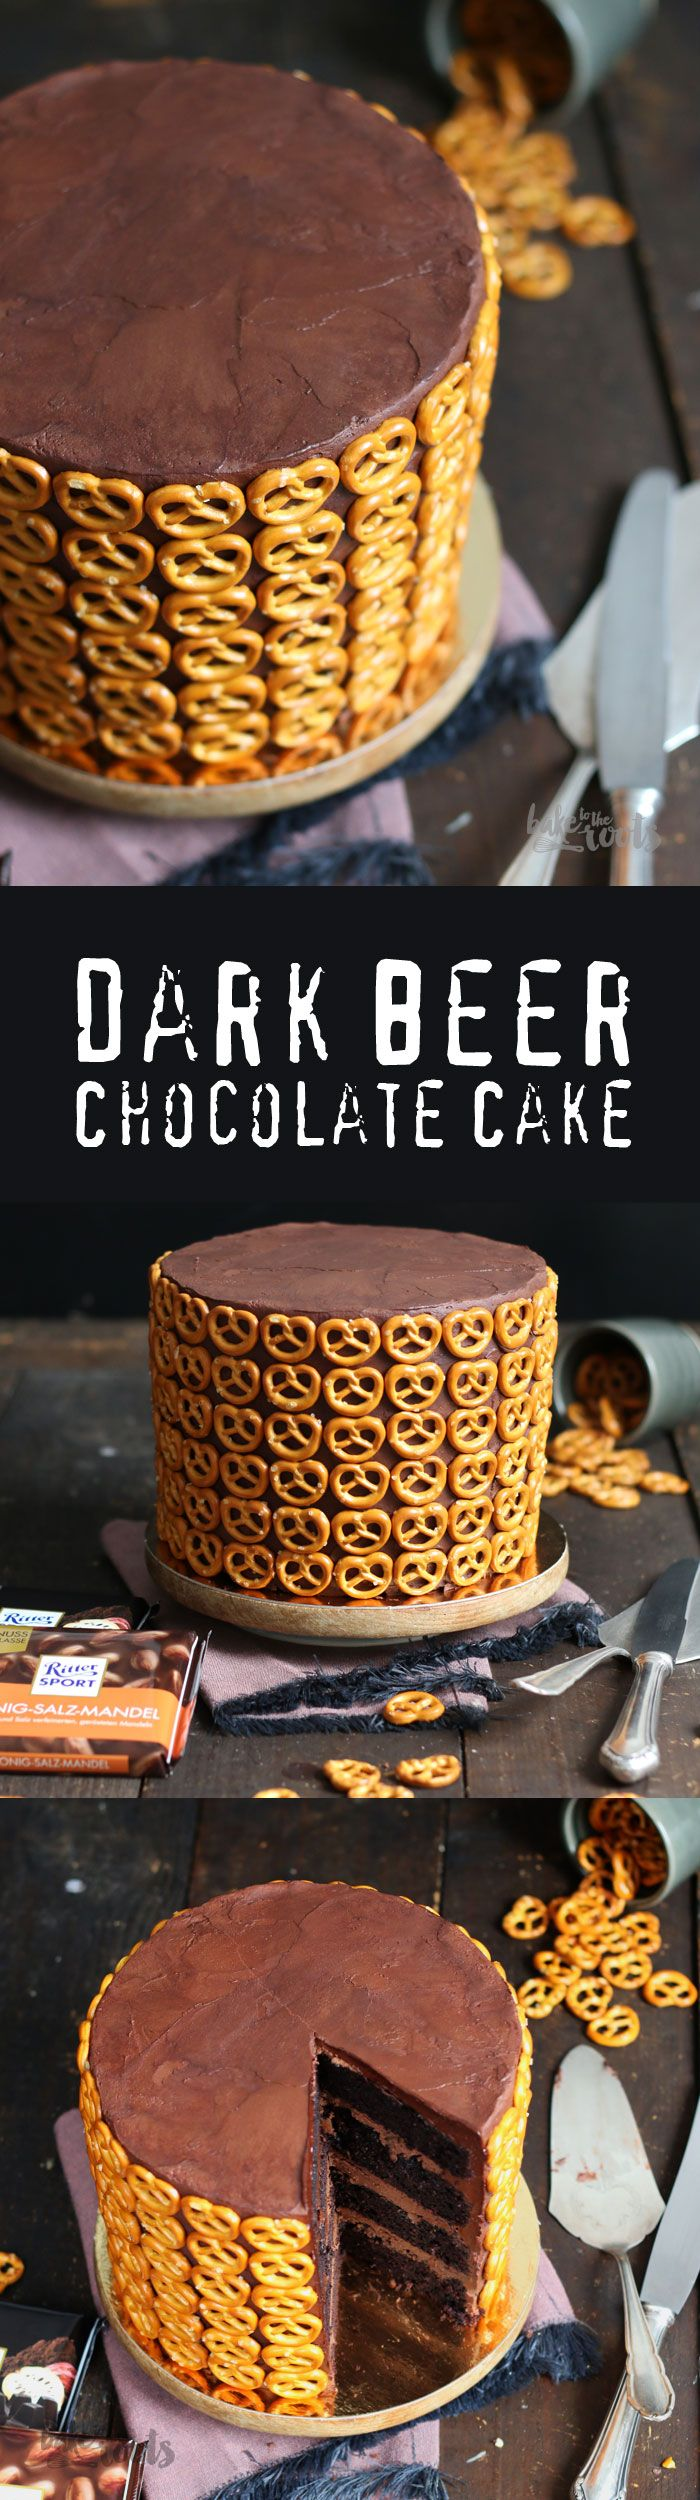 Delicious Dark Beer Chocolate Cake with a Honey-Salted-Almond Ganache Filling and Salted Pretzels | Bake to the roots